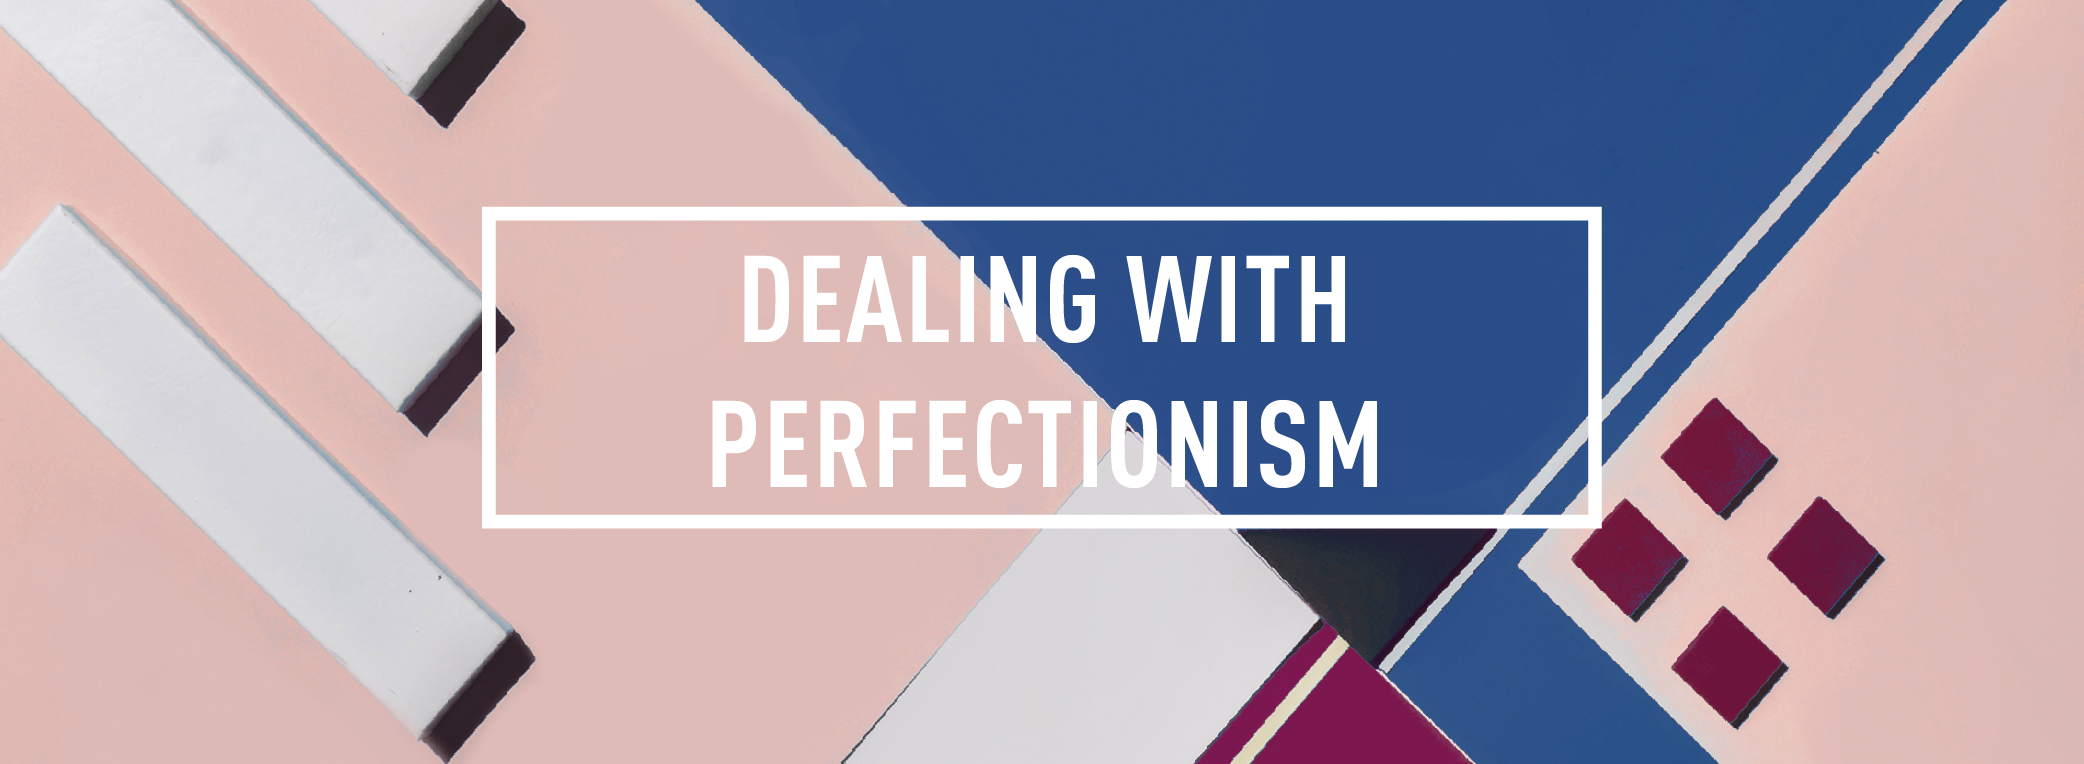 Dealing with Perfectionism_Webpage Header